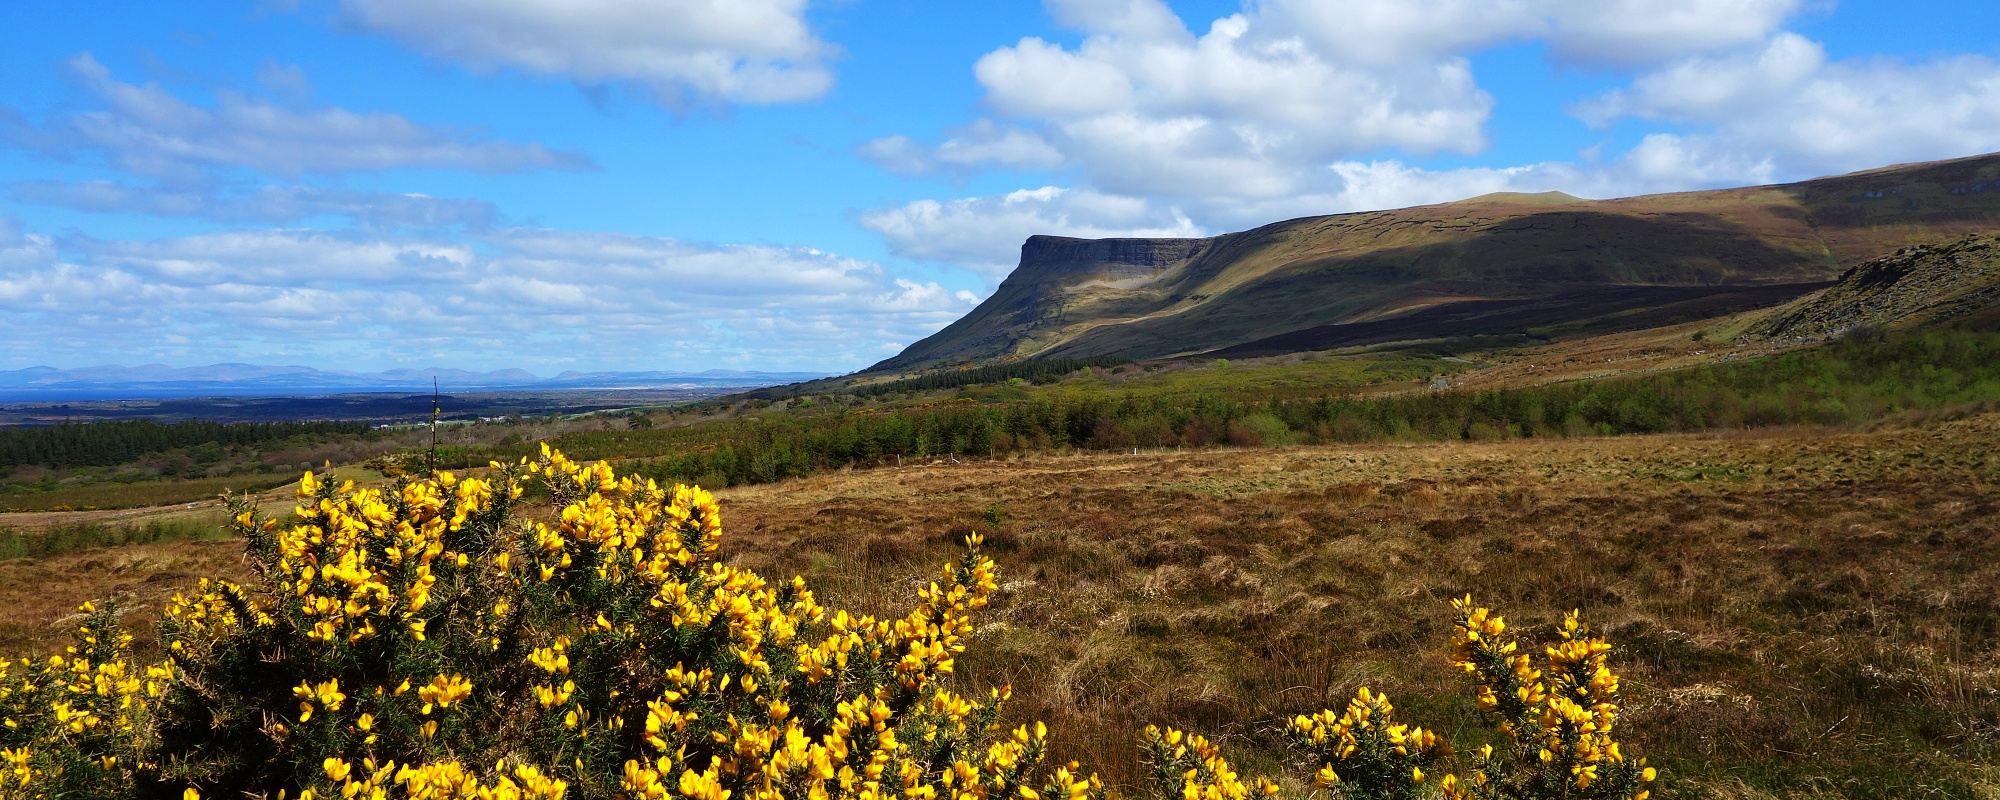 County Sligo, Ireland